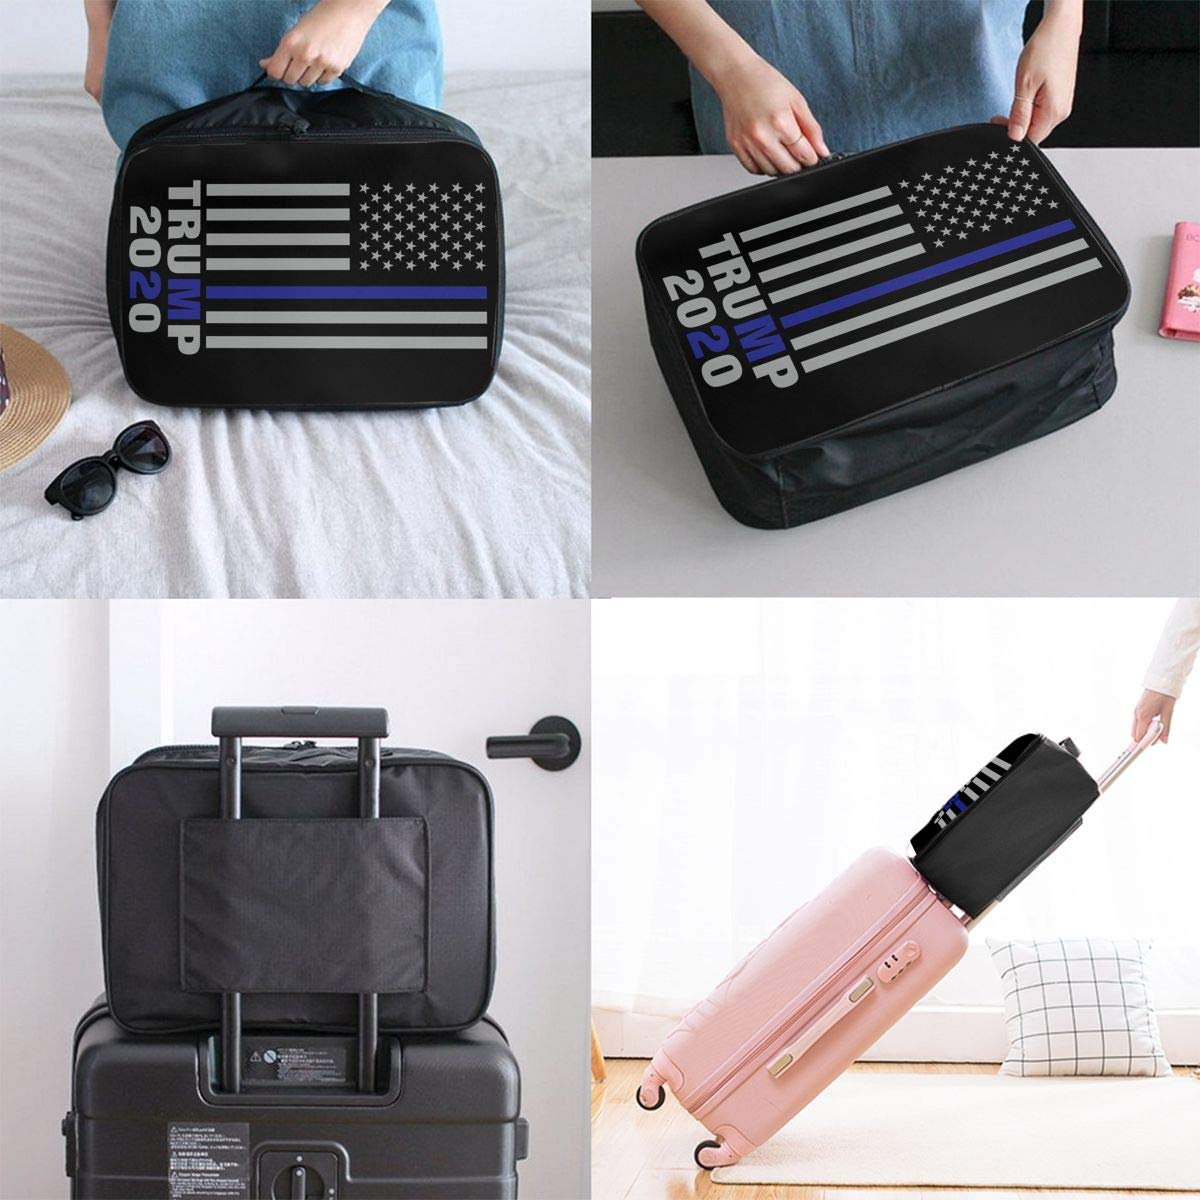 2020 Thin Blue Line Trump Lightweight Large Capacity Portable Luggage Bag Travel Duffel Bag Storage Carry Luggage Duffle Tote Bag